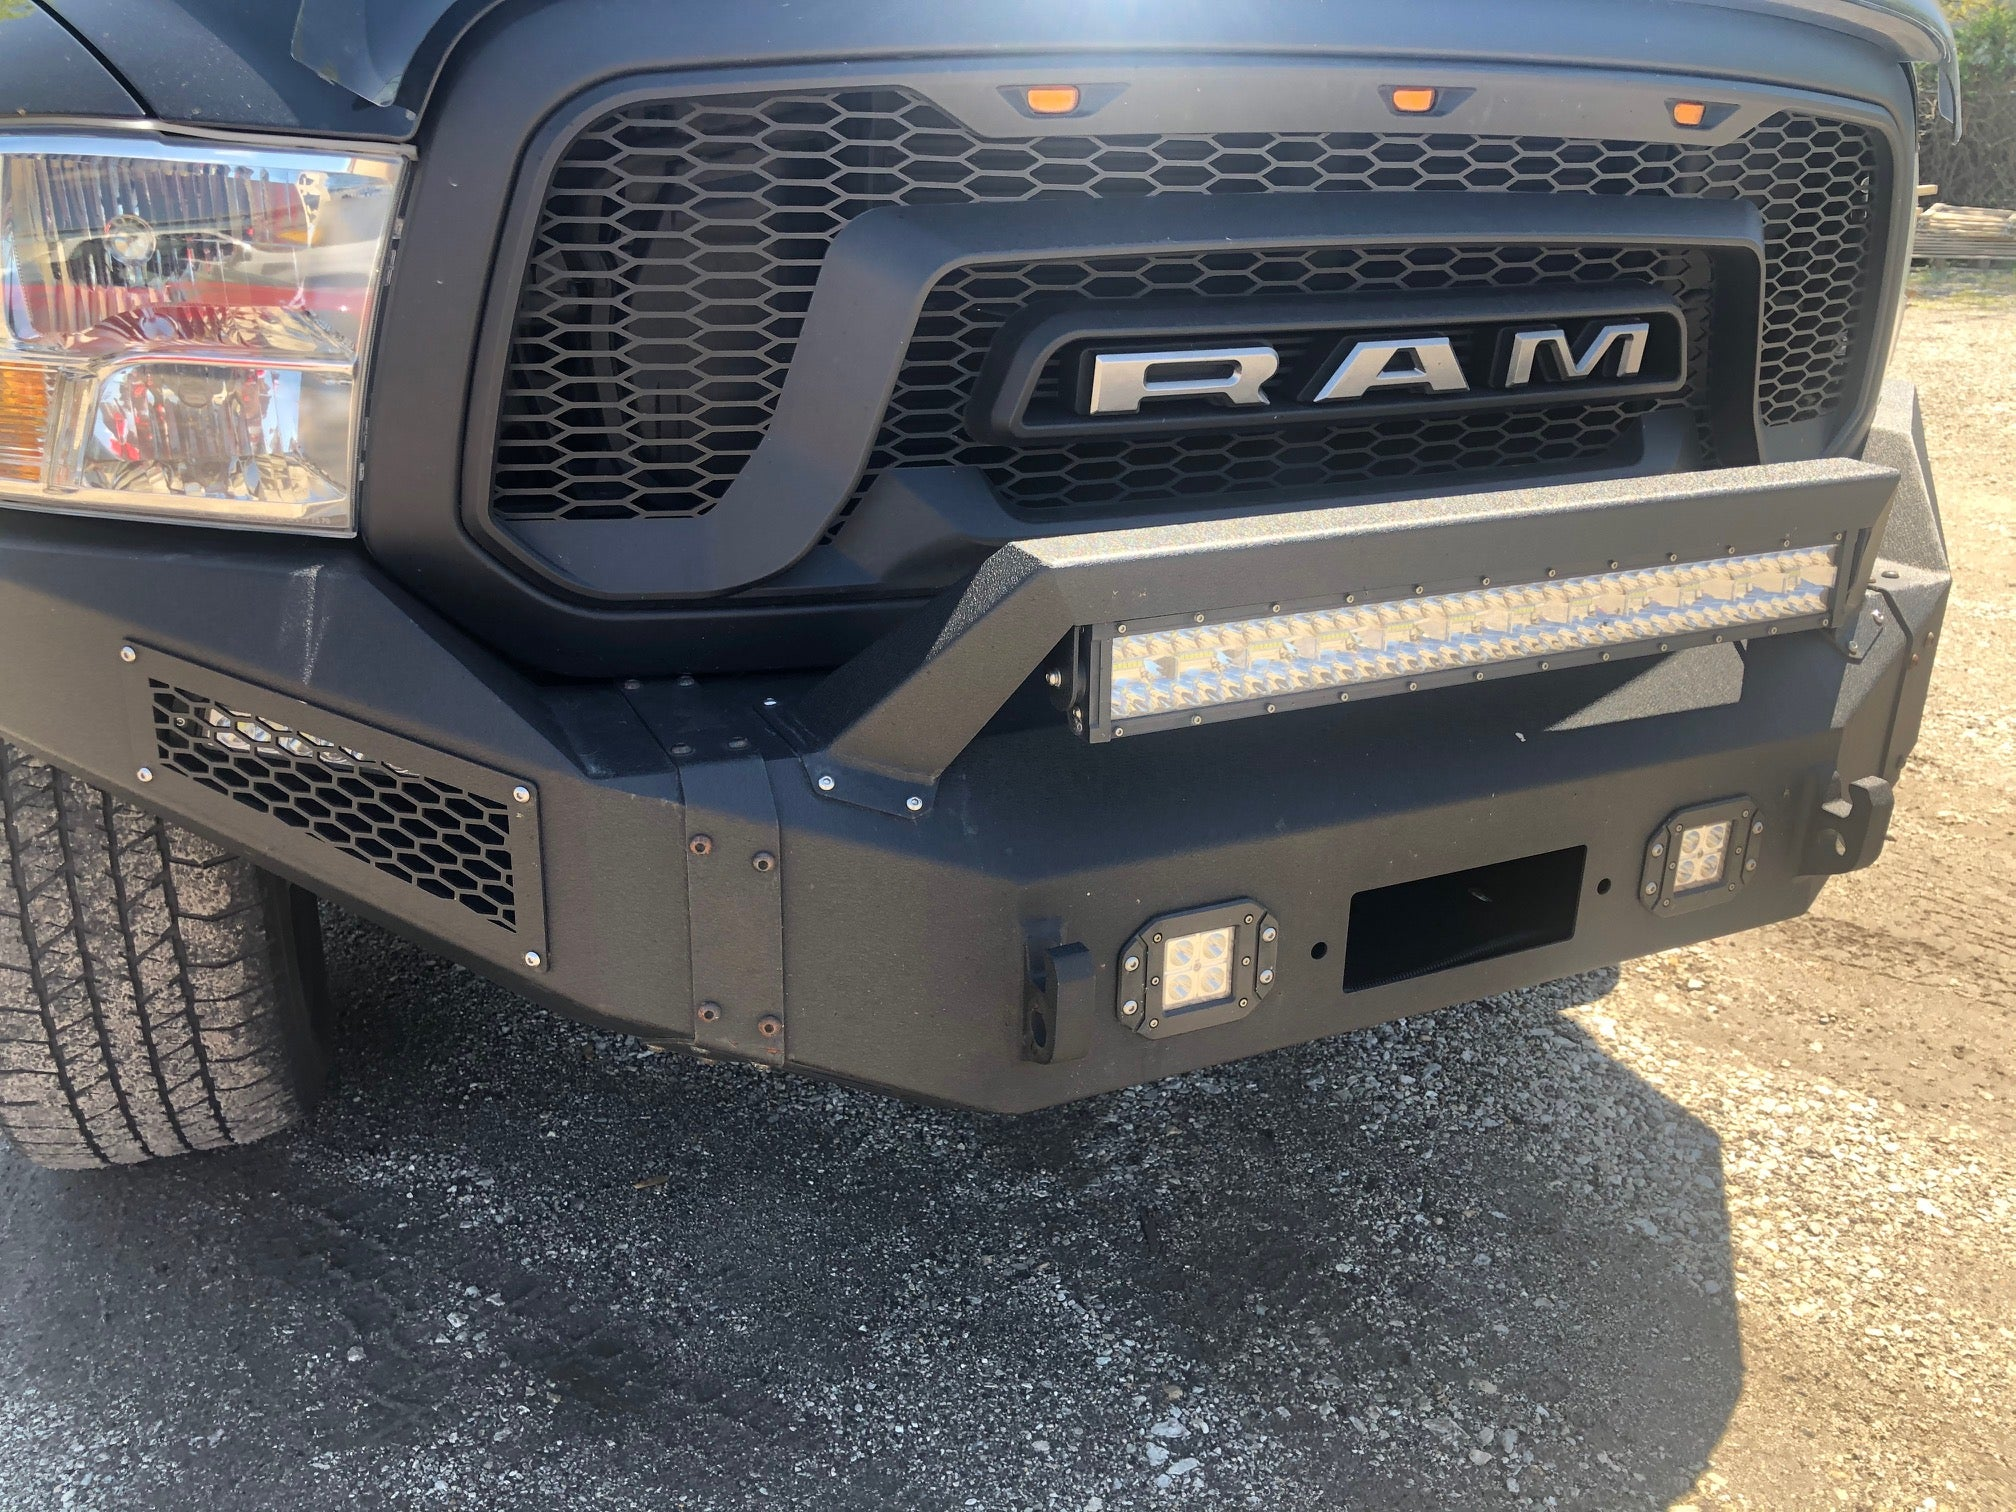 Ram Offroad Bumper with Led Lightbar